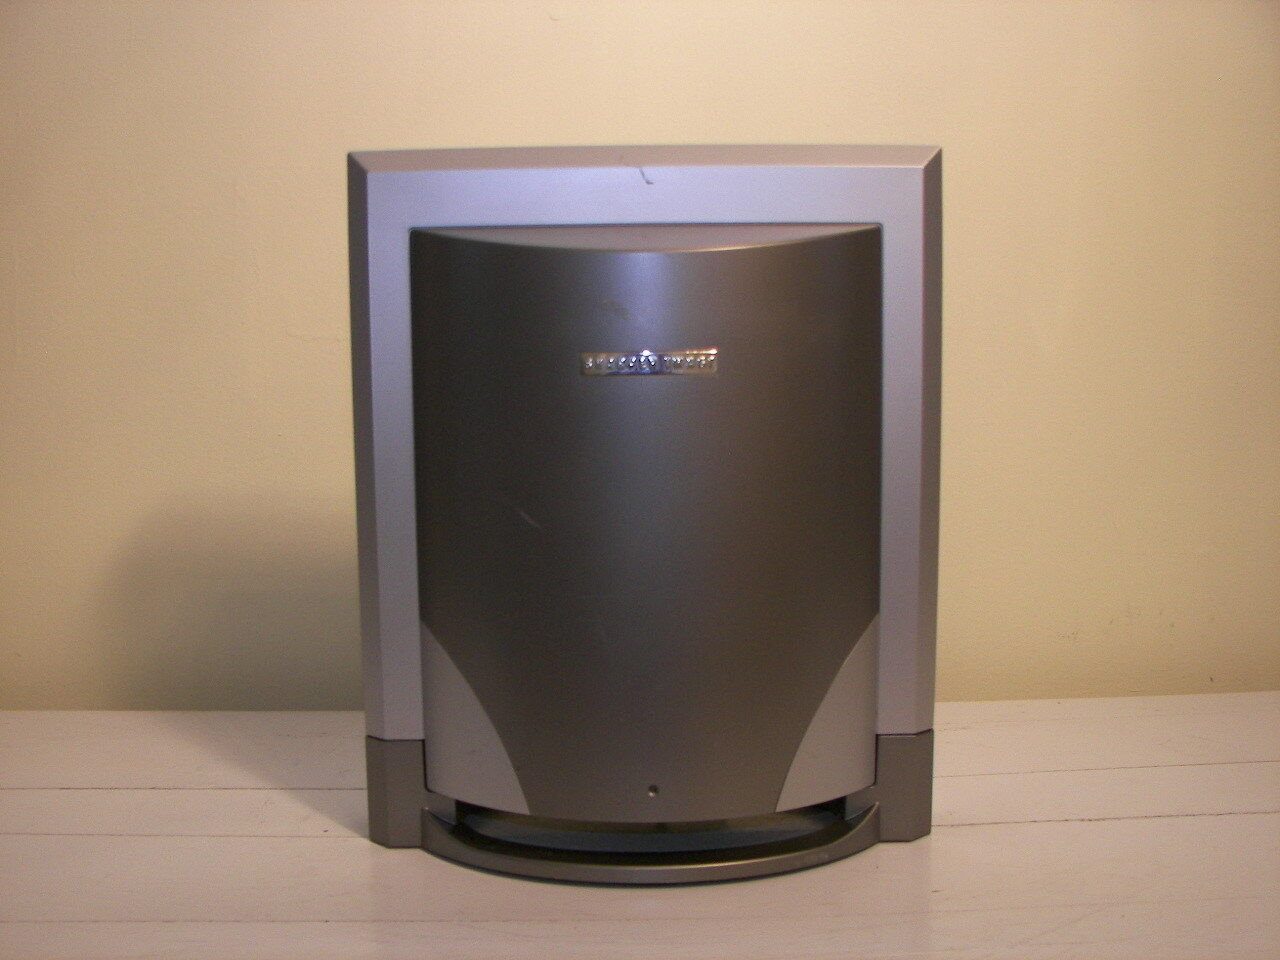 """SHARPER IMAGE SA-251Powered Subwoofer With """"Bass-Trac Circuitry Technology"""""""